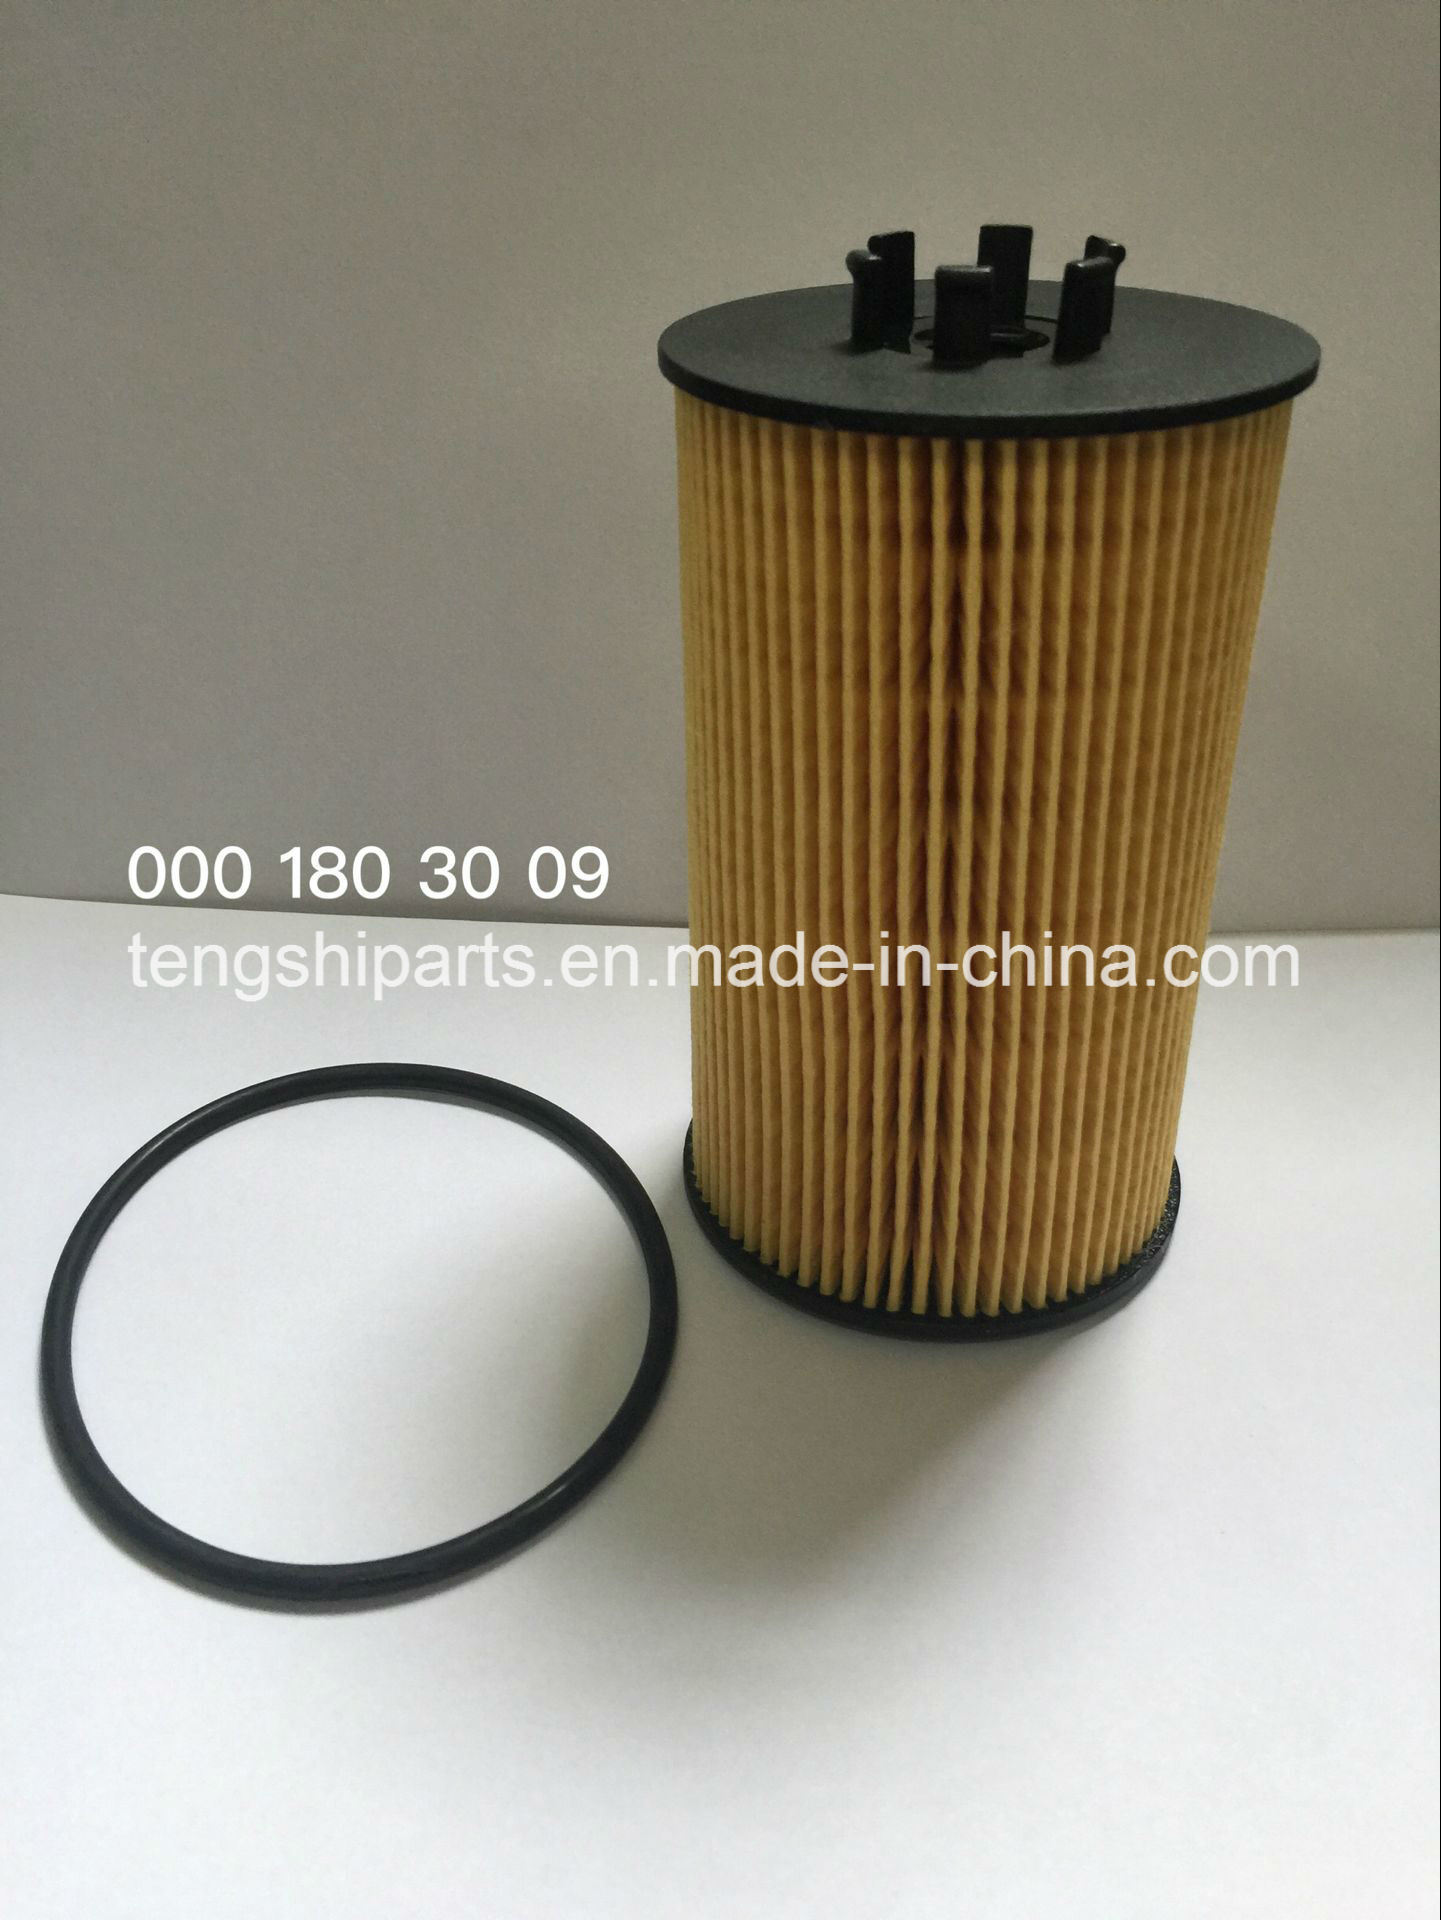 Auto Parts Oil Filter for Mercedes-Benz